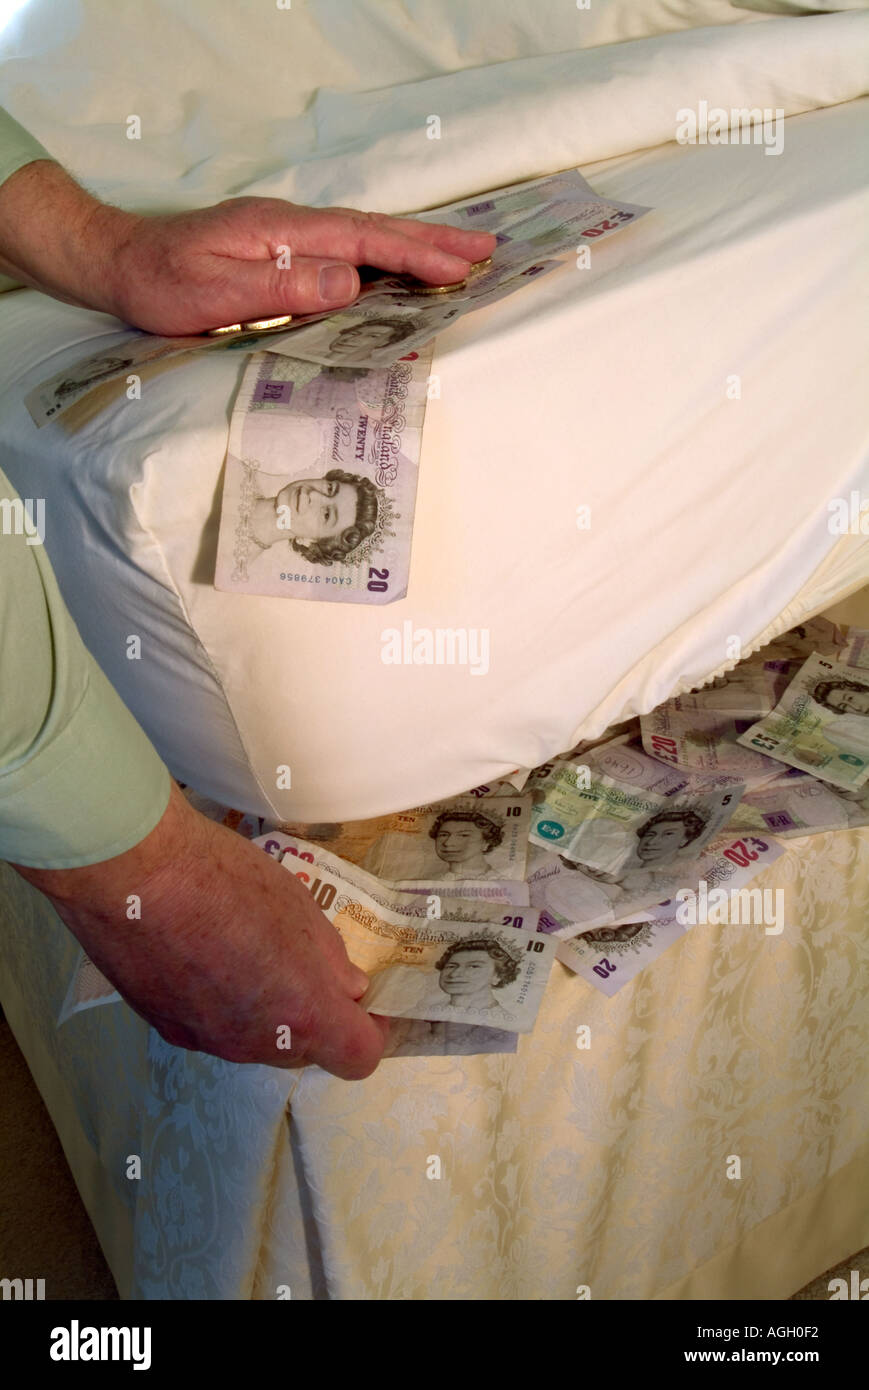 Bank Notes Under Bed Mattress With Hand Sorting Pound Sterling Cash Stock Photo Alamy